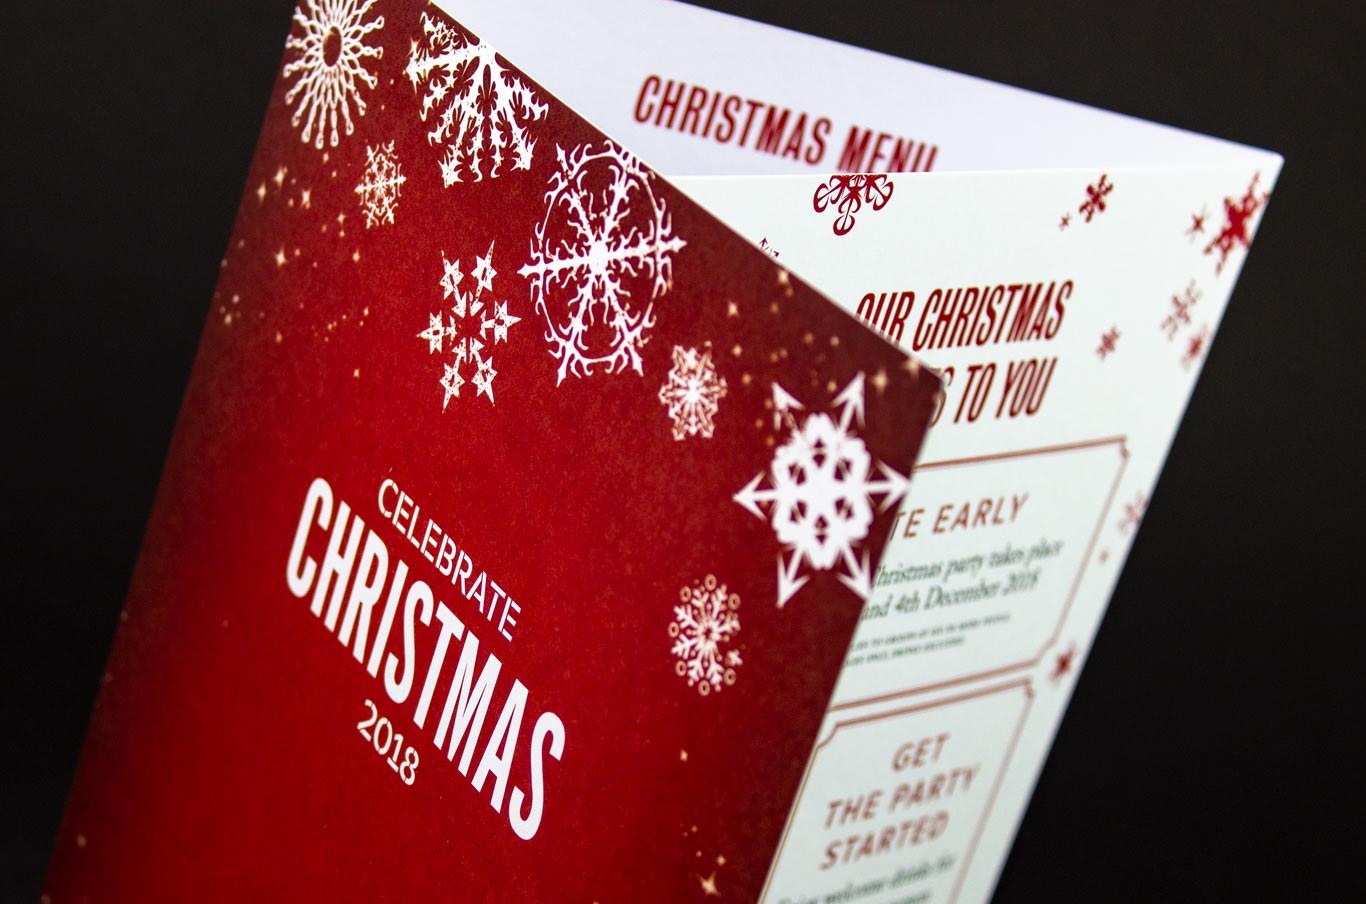 Christmas menu for a London restaurant and wine bar